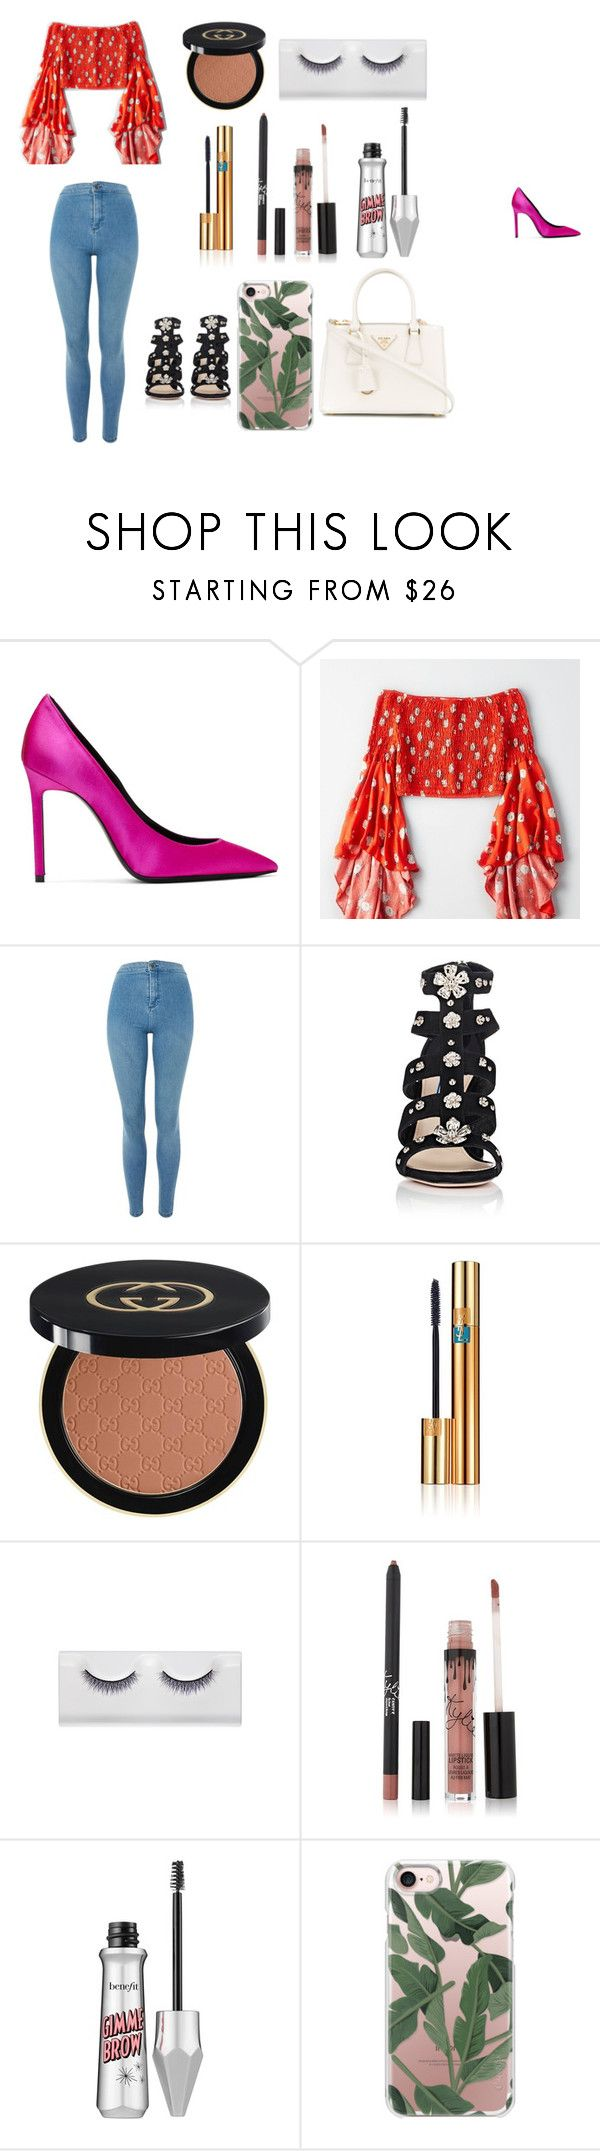 """""""Tropical Goddess"""" by indiac-joseph on Polyvore featuring Yves Saint Laurent, American Eagle Outfitters, Topshop, Prada, Gucci, Benefit and Casetify"""